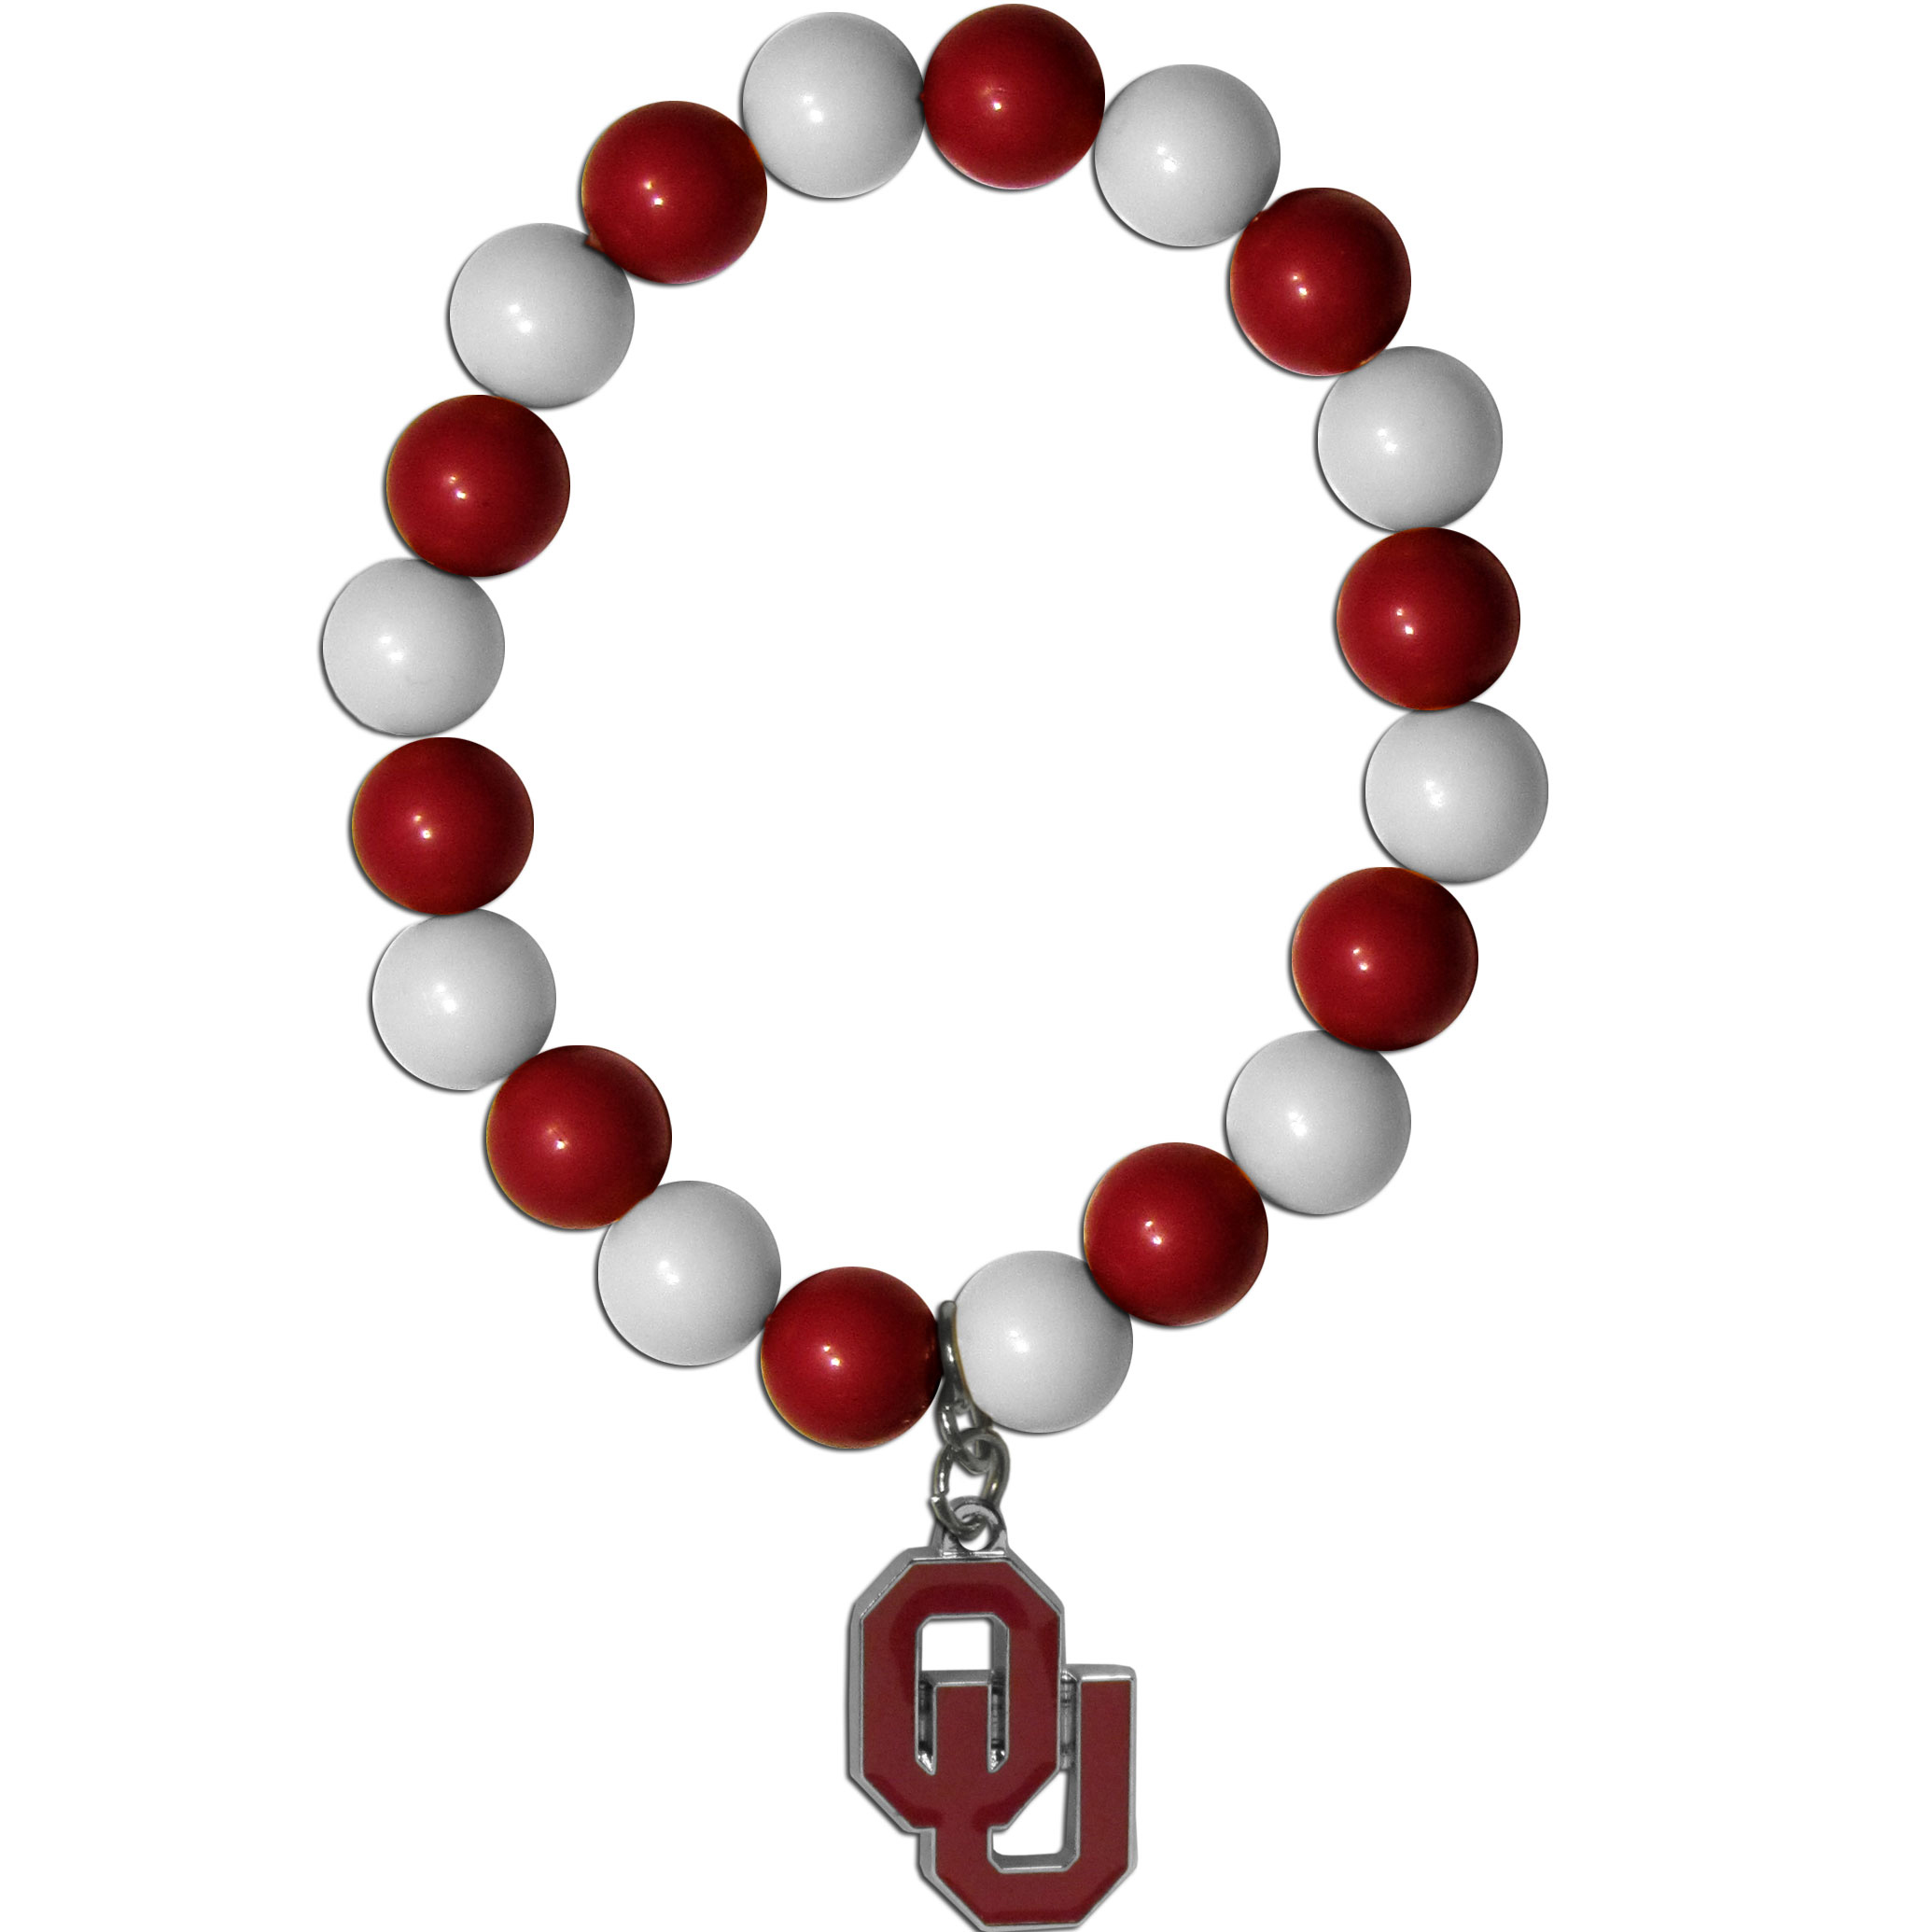 Oklahoma Sooners Fan Bead Bracelet - Flash your Oklahoma Sooners spirit with this bright stretch bracelet. This new bracelet features multicolored team beads on stretch cord with a nickel-free enameled chrome team charm. This bracelet adds the perfect pop of color to your game day accessories.